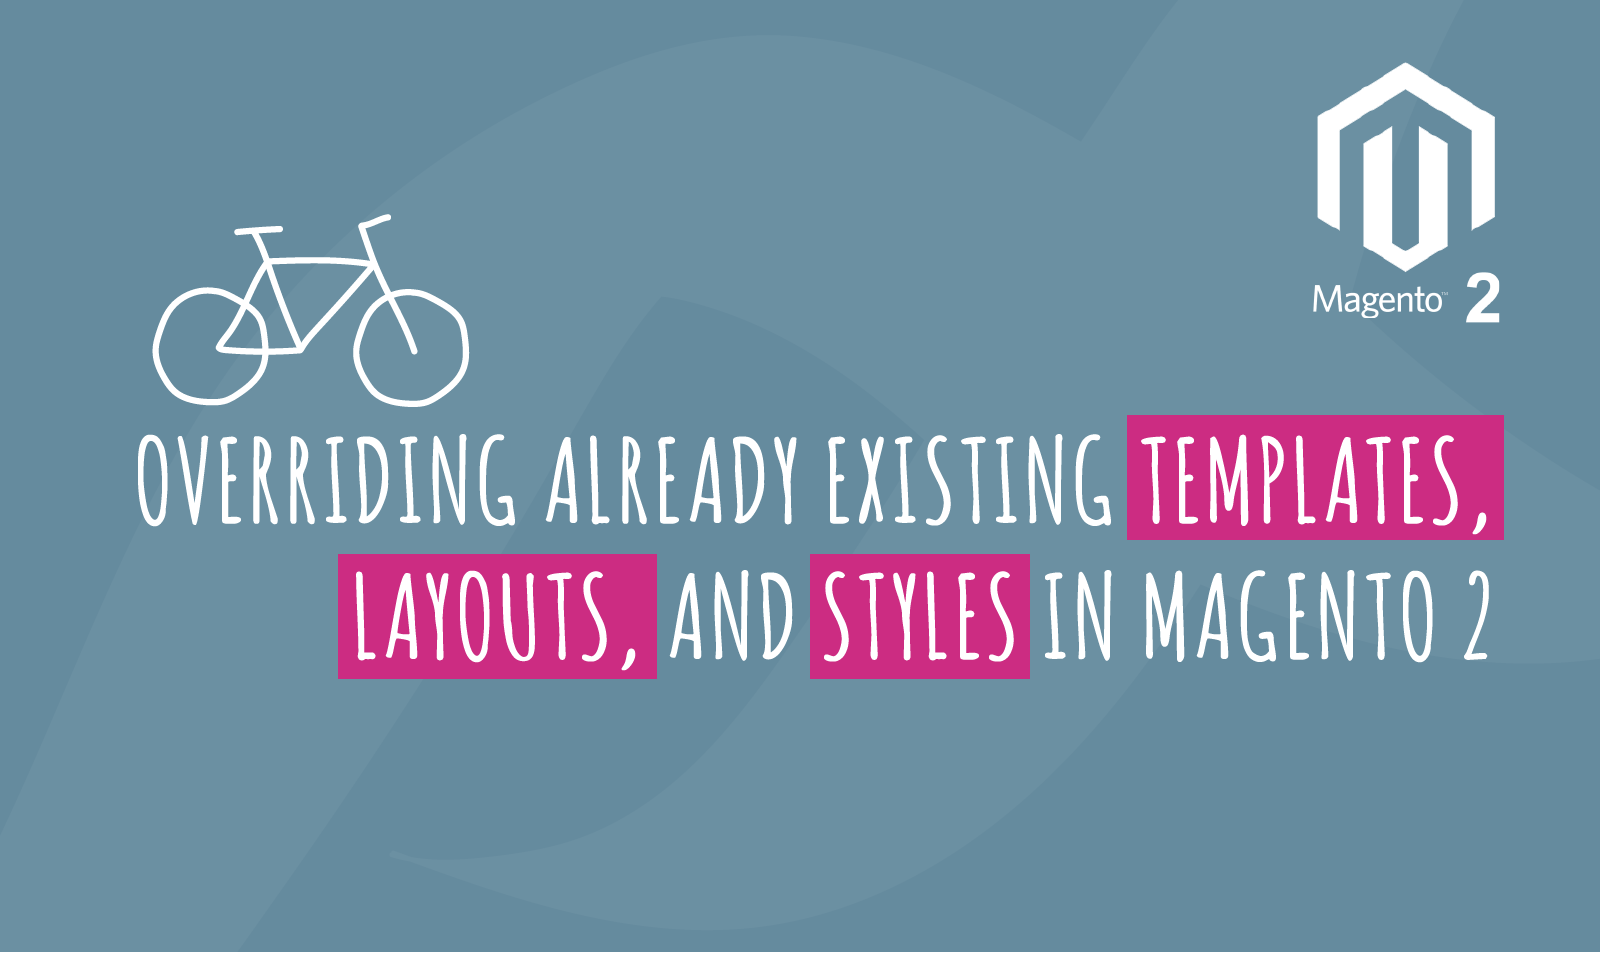 OVERRIDING ALREADY EXISTING TEMPLATES, LAYOUTS, AND STYLES IN MAGENTO 2